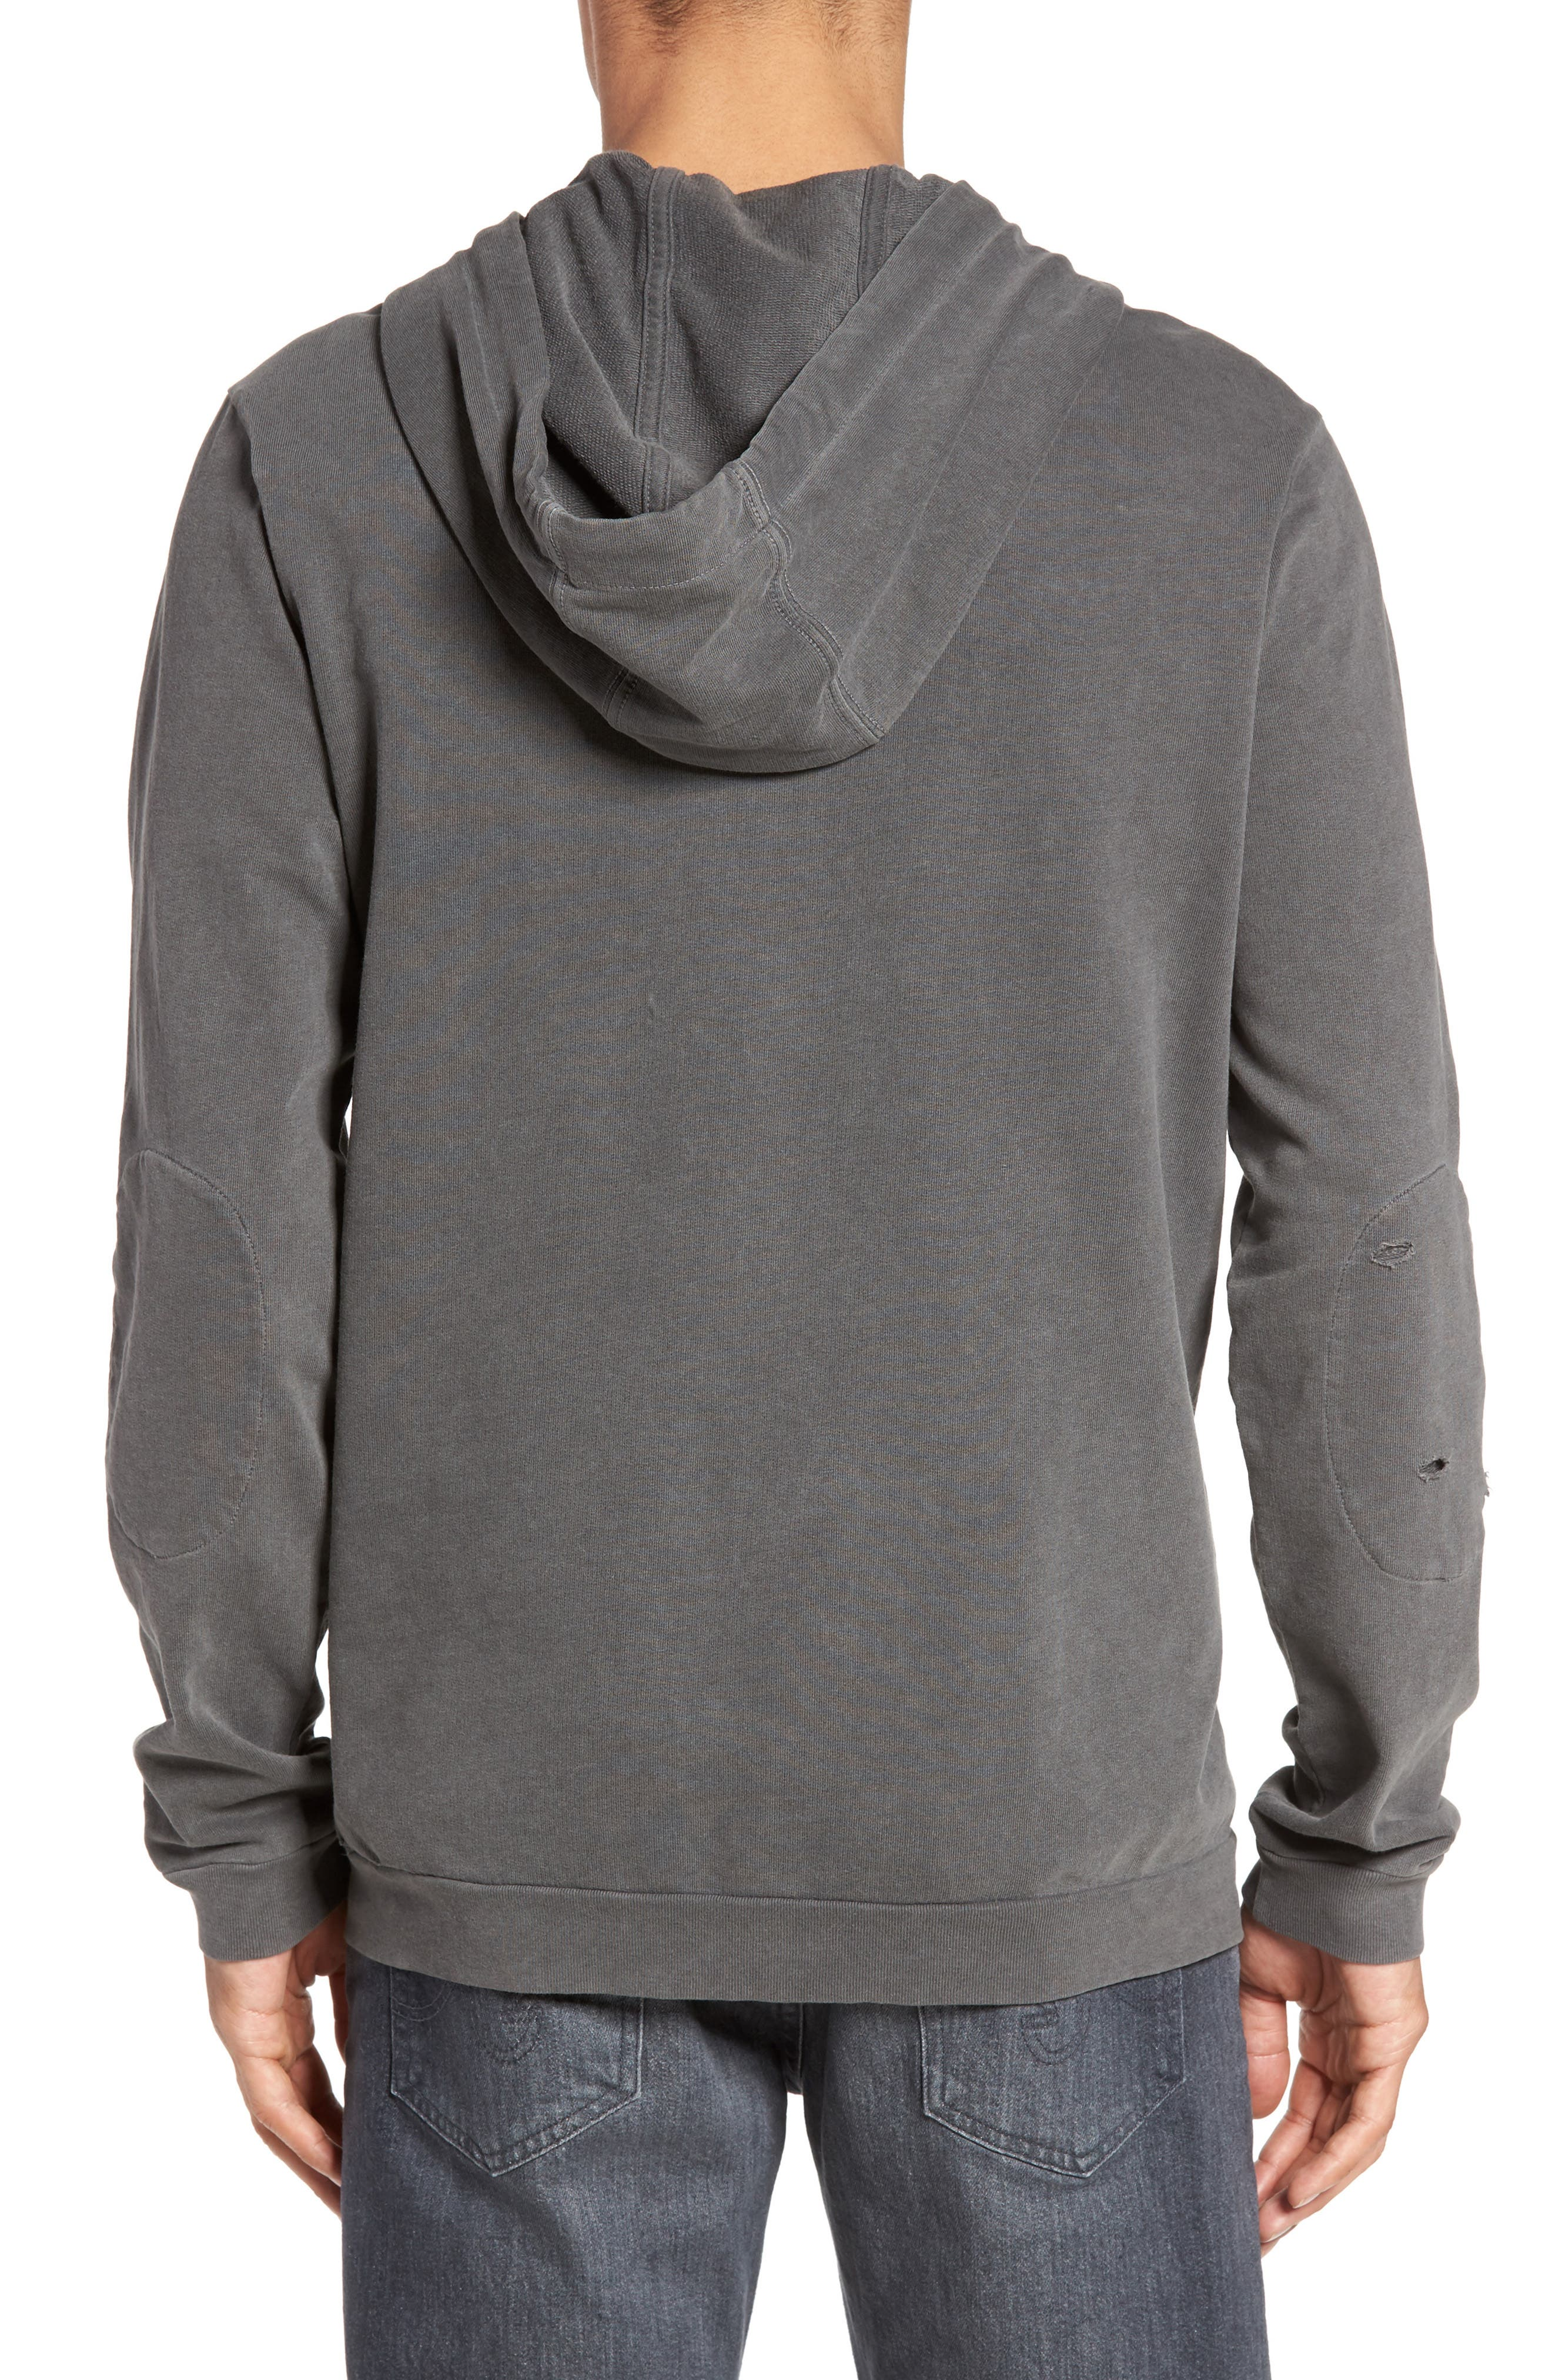 Eloi Pullover Hoodie,                             Alternate thumbnail 2, color,                             022